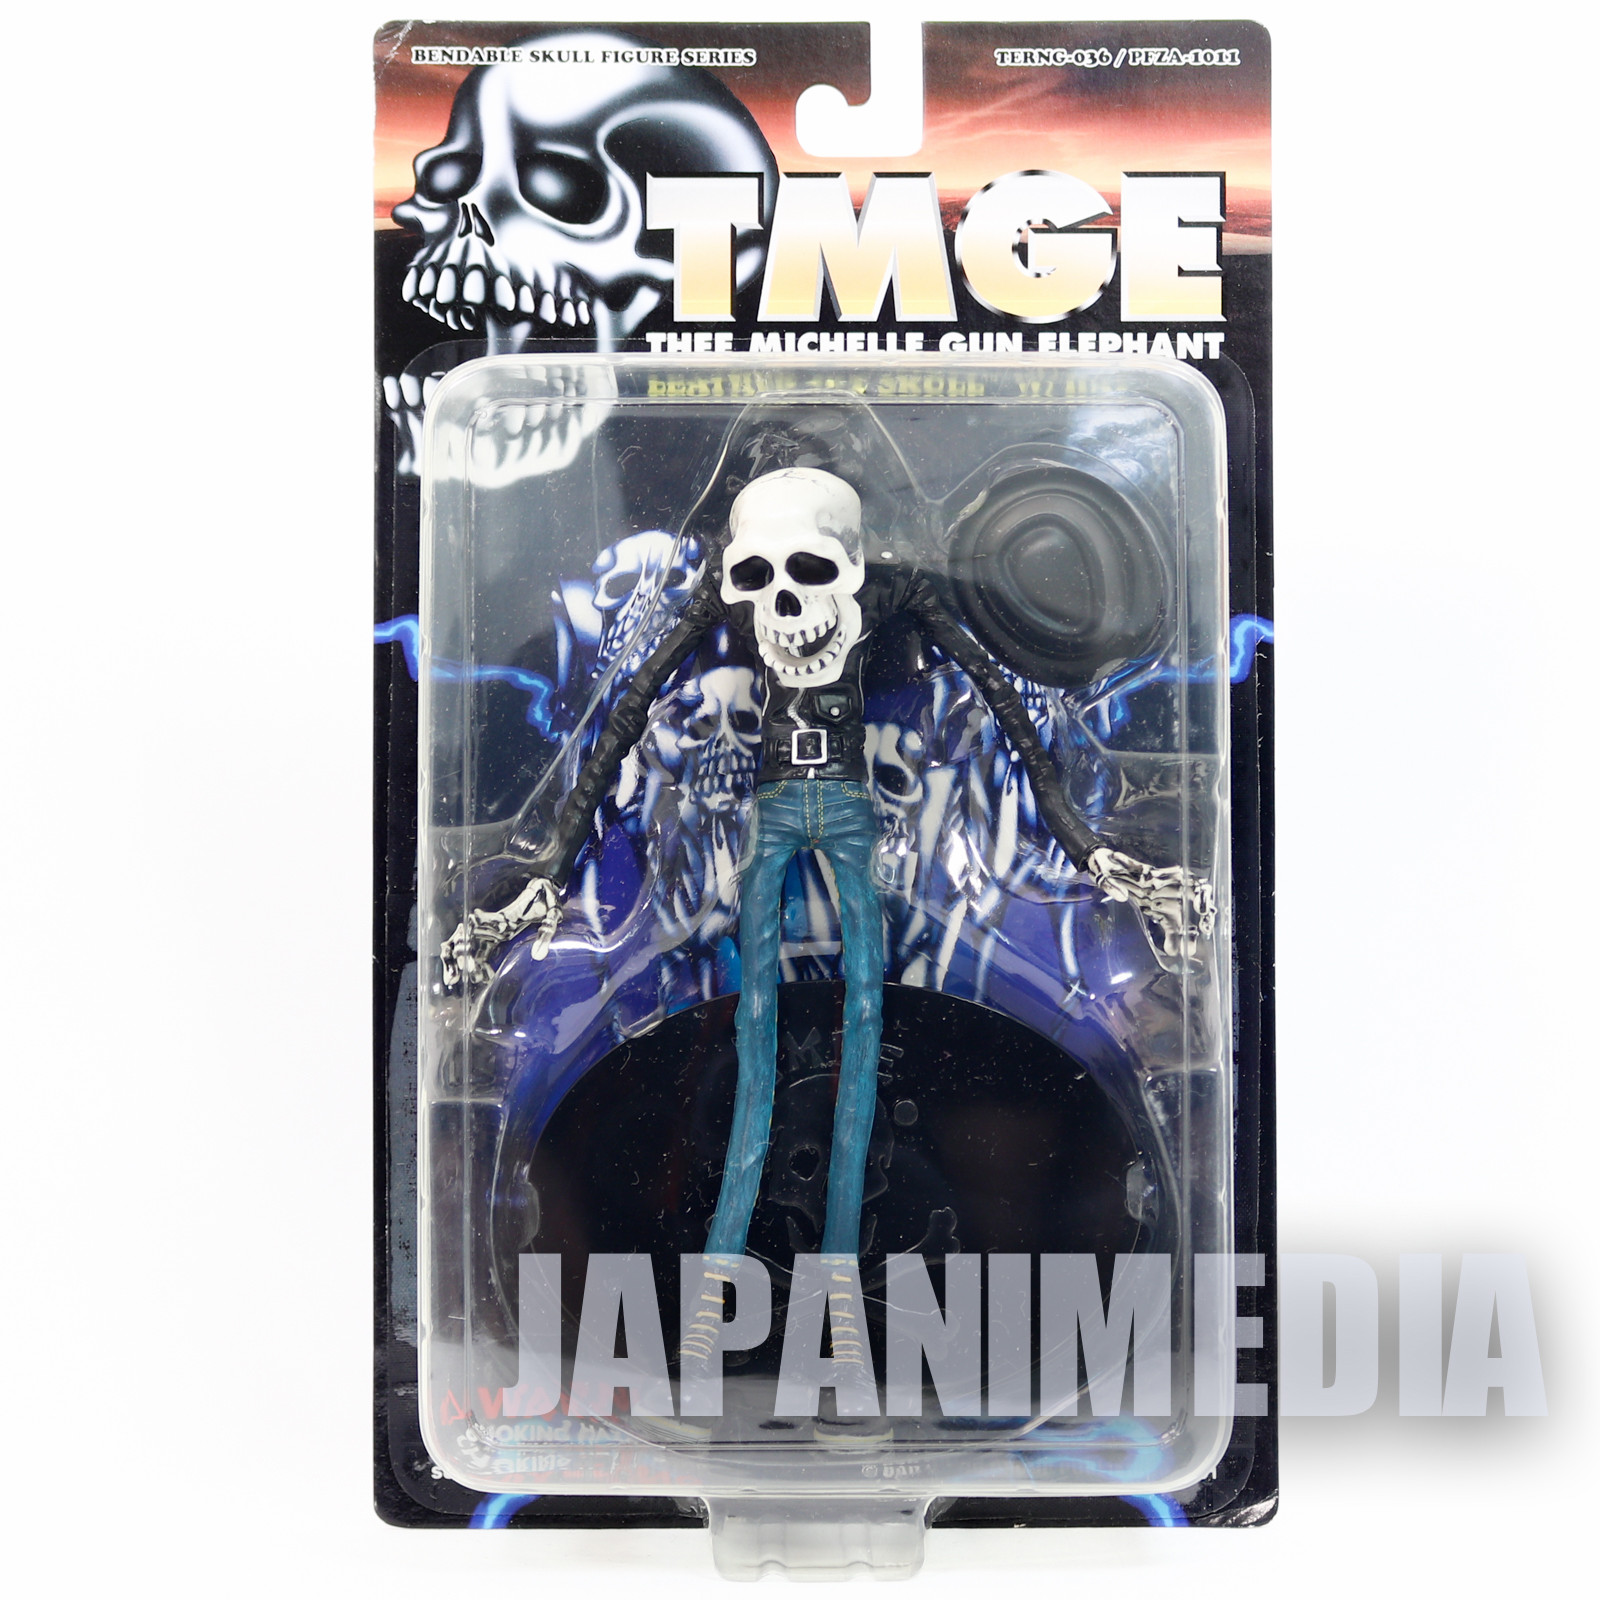 Thee Michelle Gun Elephant Leather Jkt Skull Bendable Figure Medicom Toy JAPAN